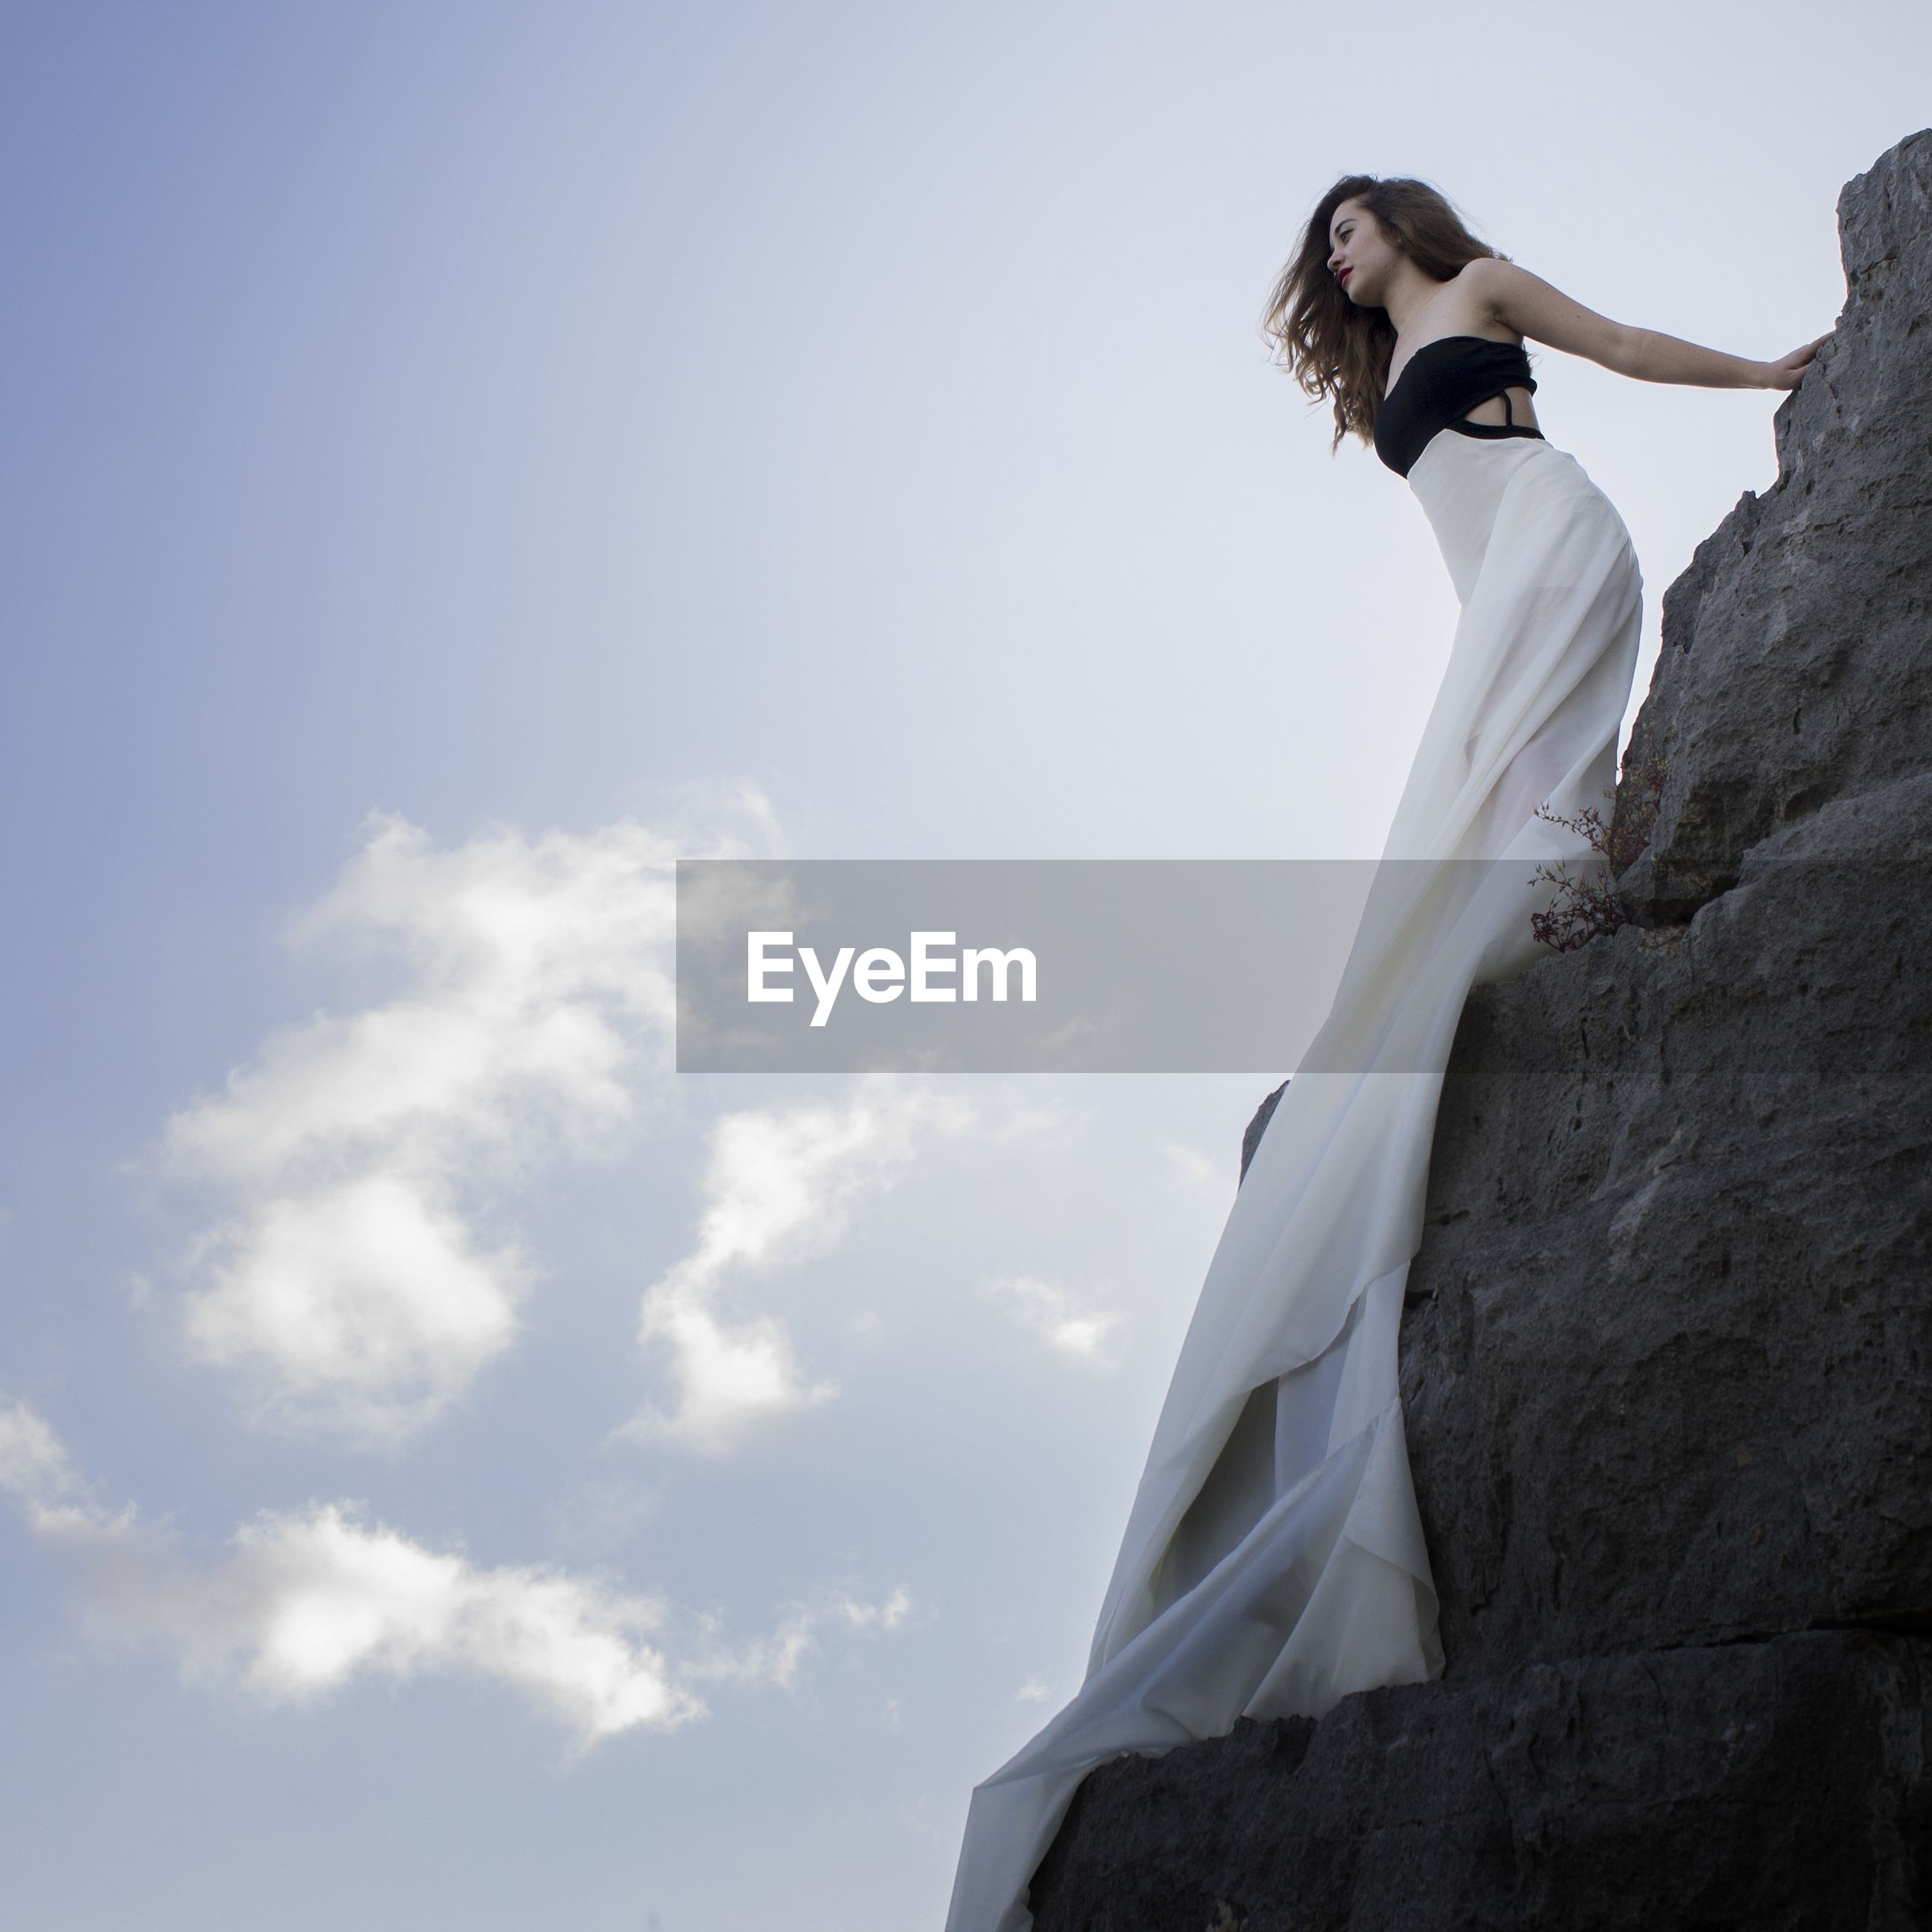 Low angle view of woman in evening gown standing on rock against sky